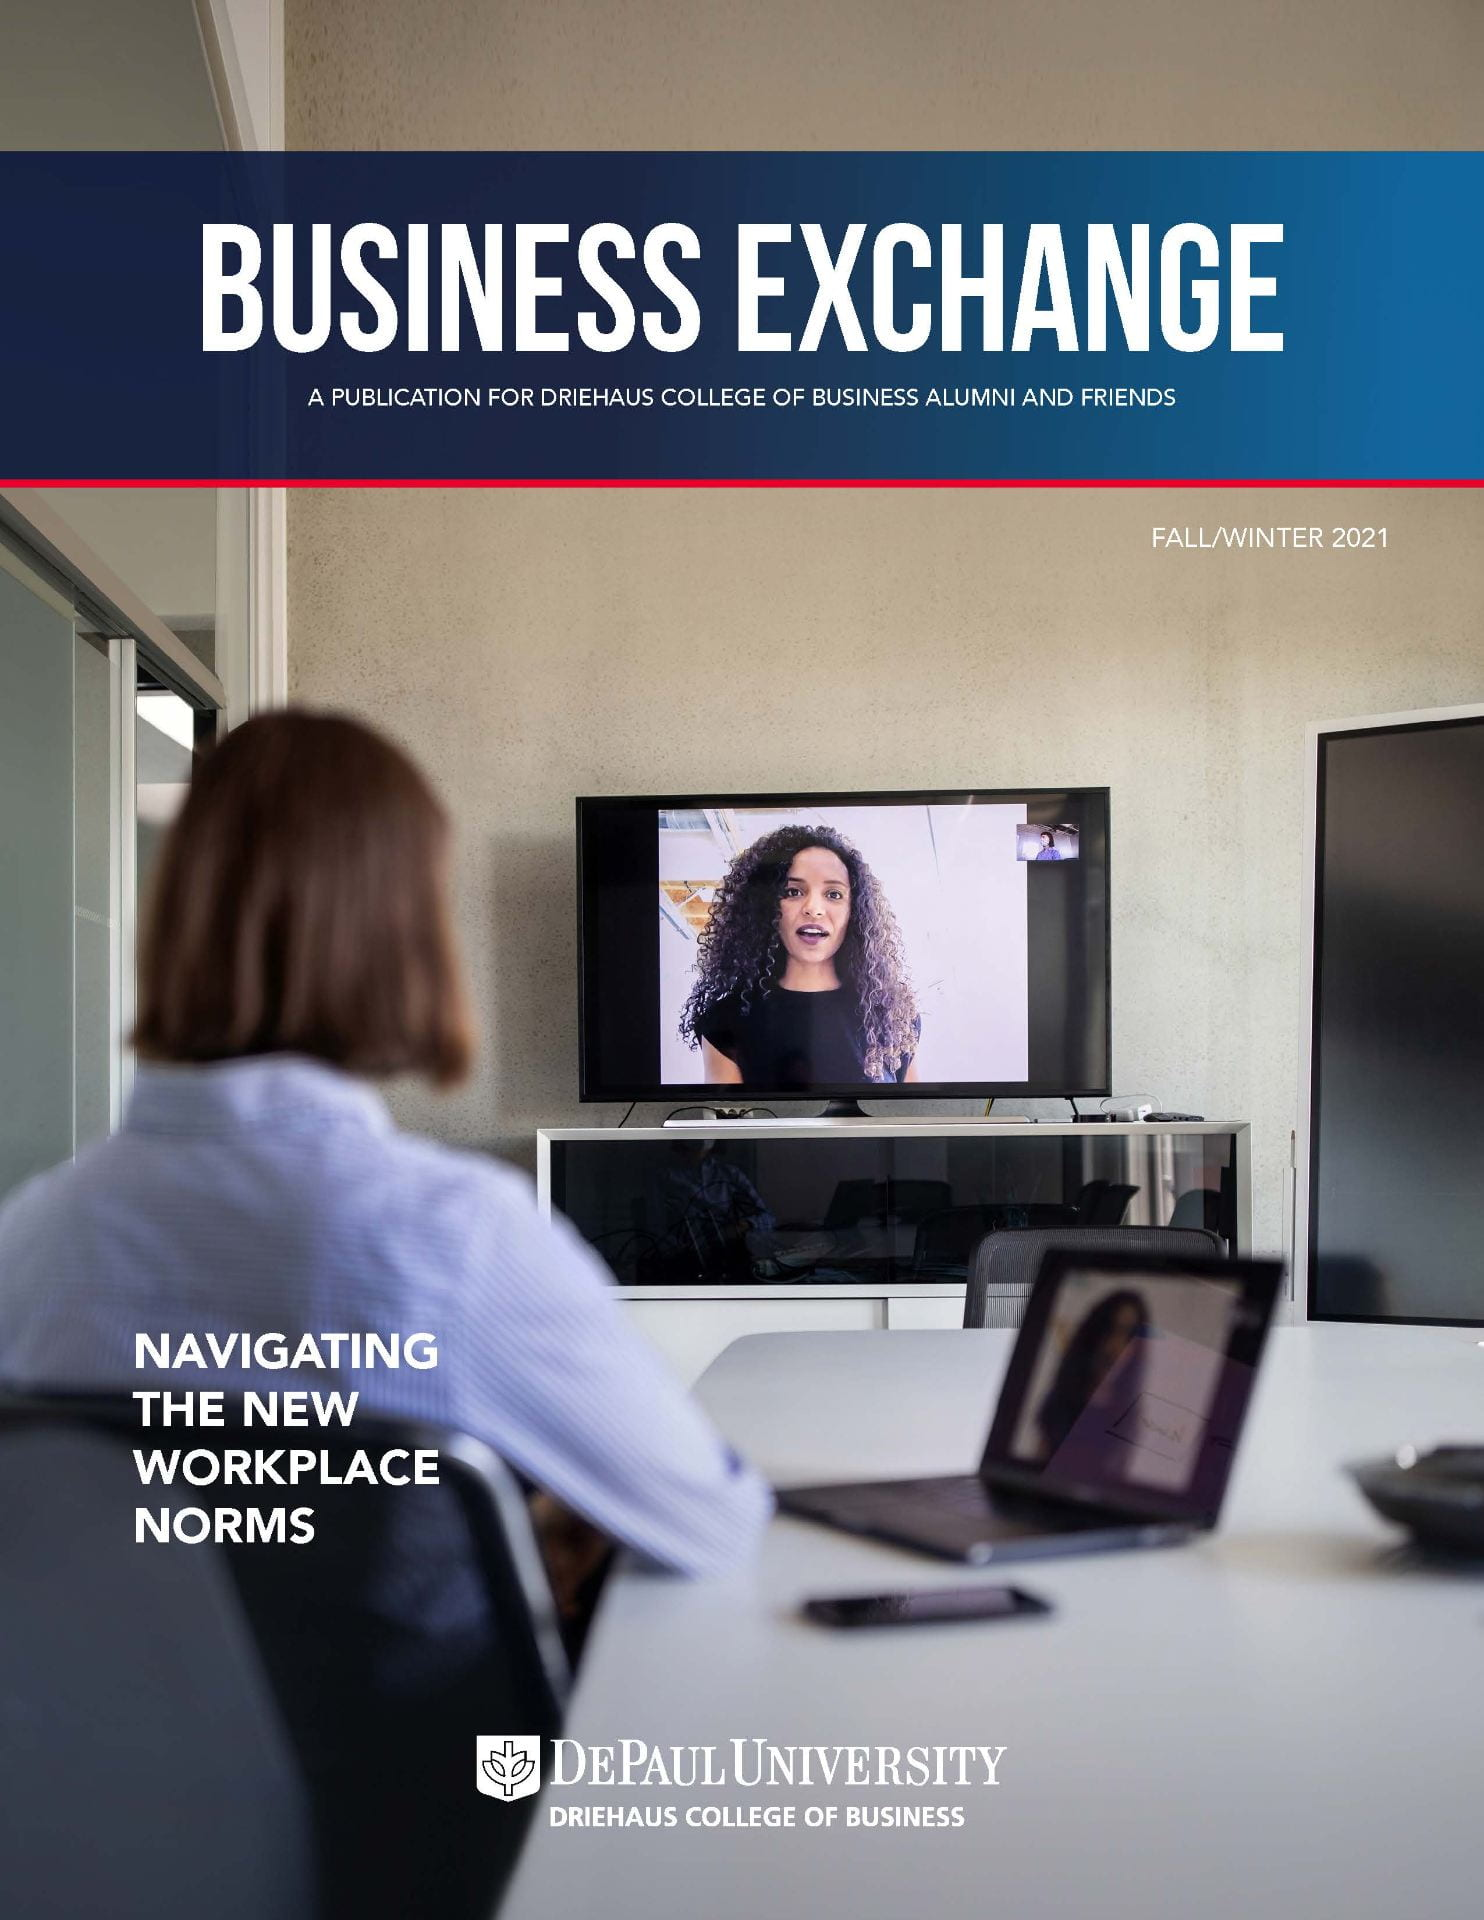 Business Exchange Fall/Winter 2021 magazine cover